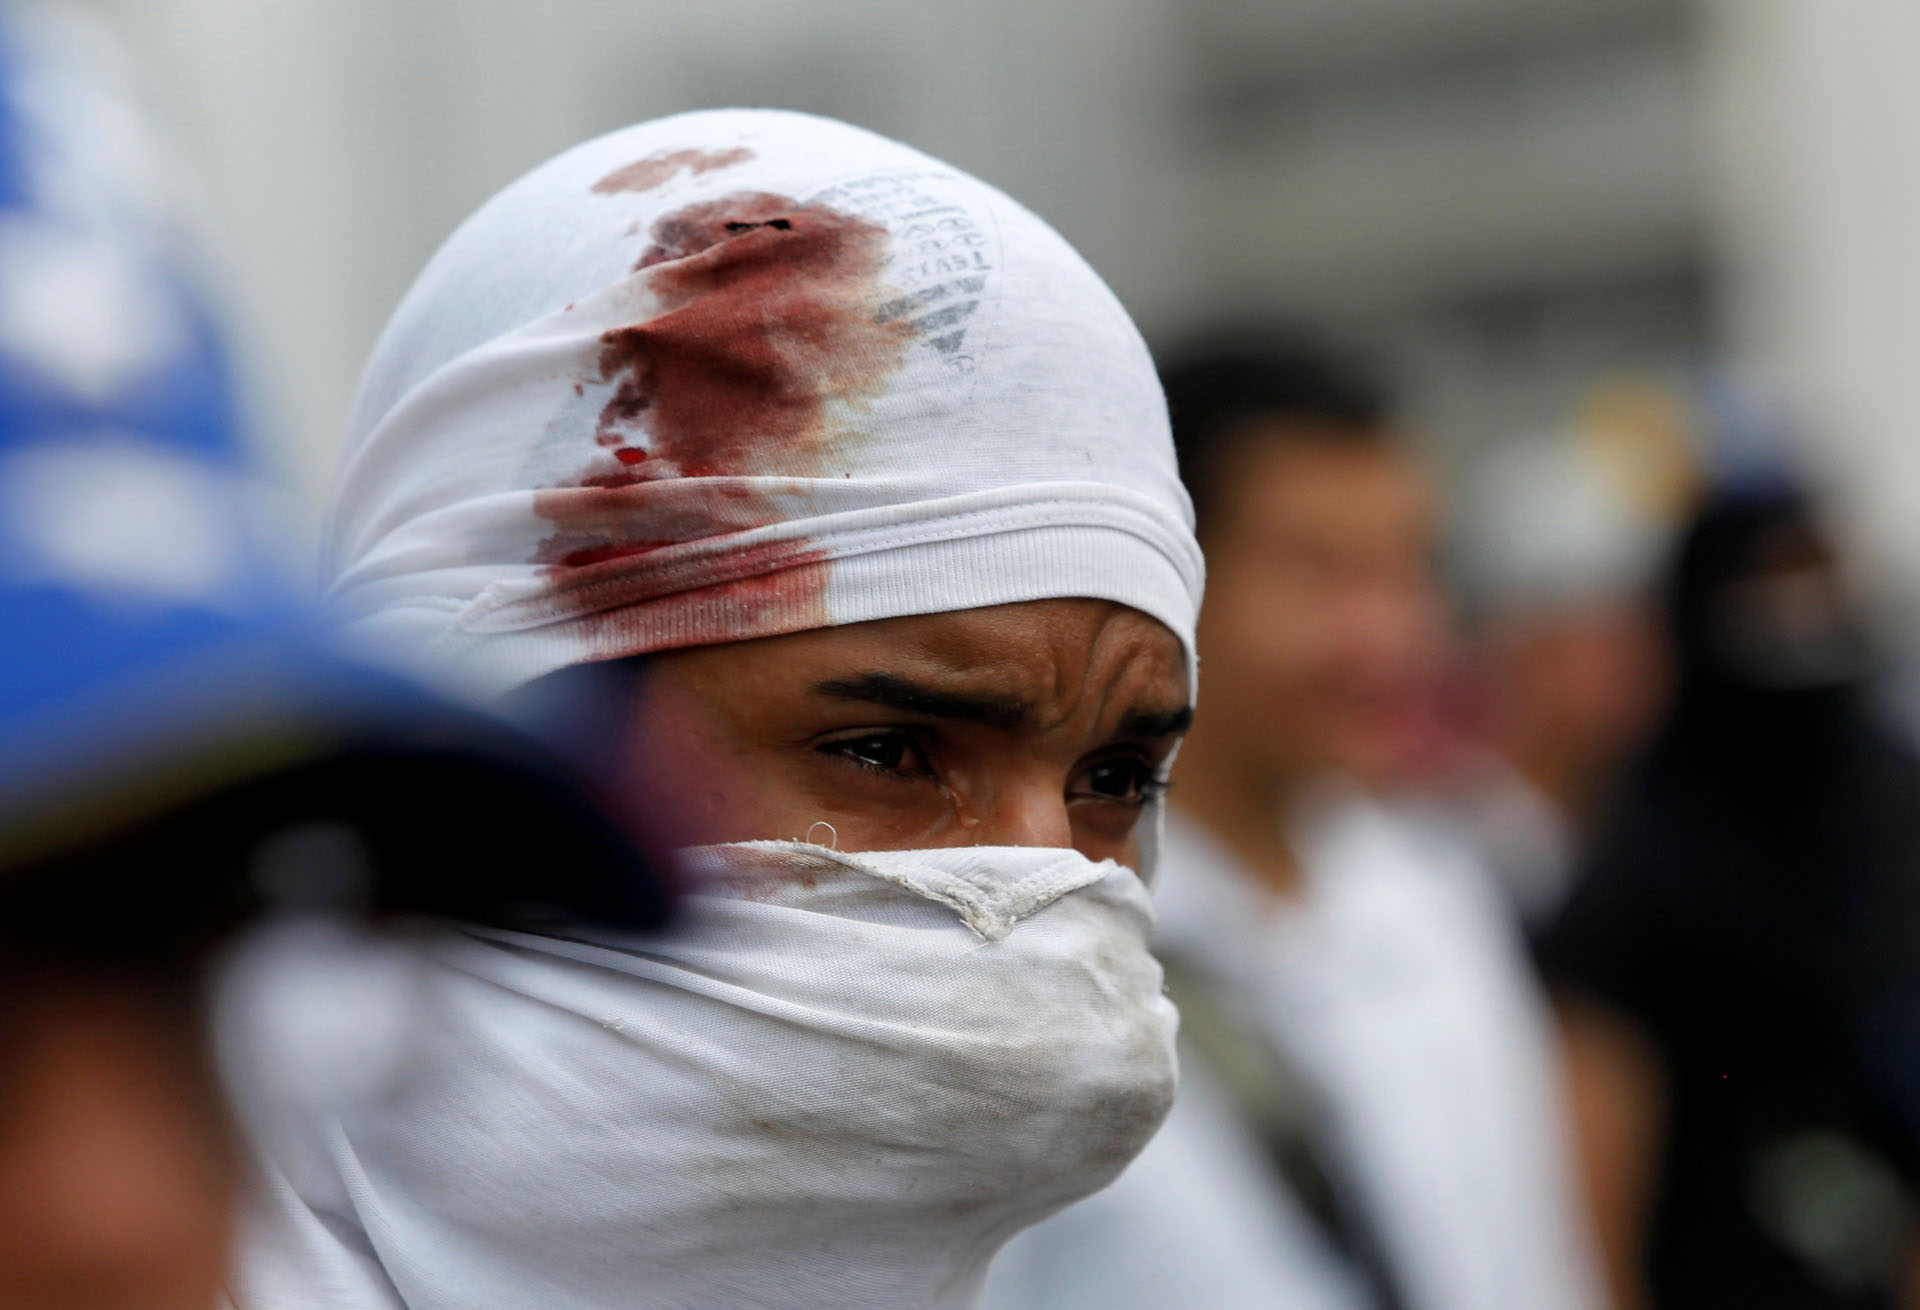 An injured demonstrator reacts during clashes with the police at an opposition rally in Caracas, Venezuela, April 6, 2017. REUTERS/Christian Veron